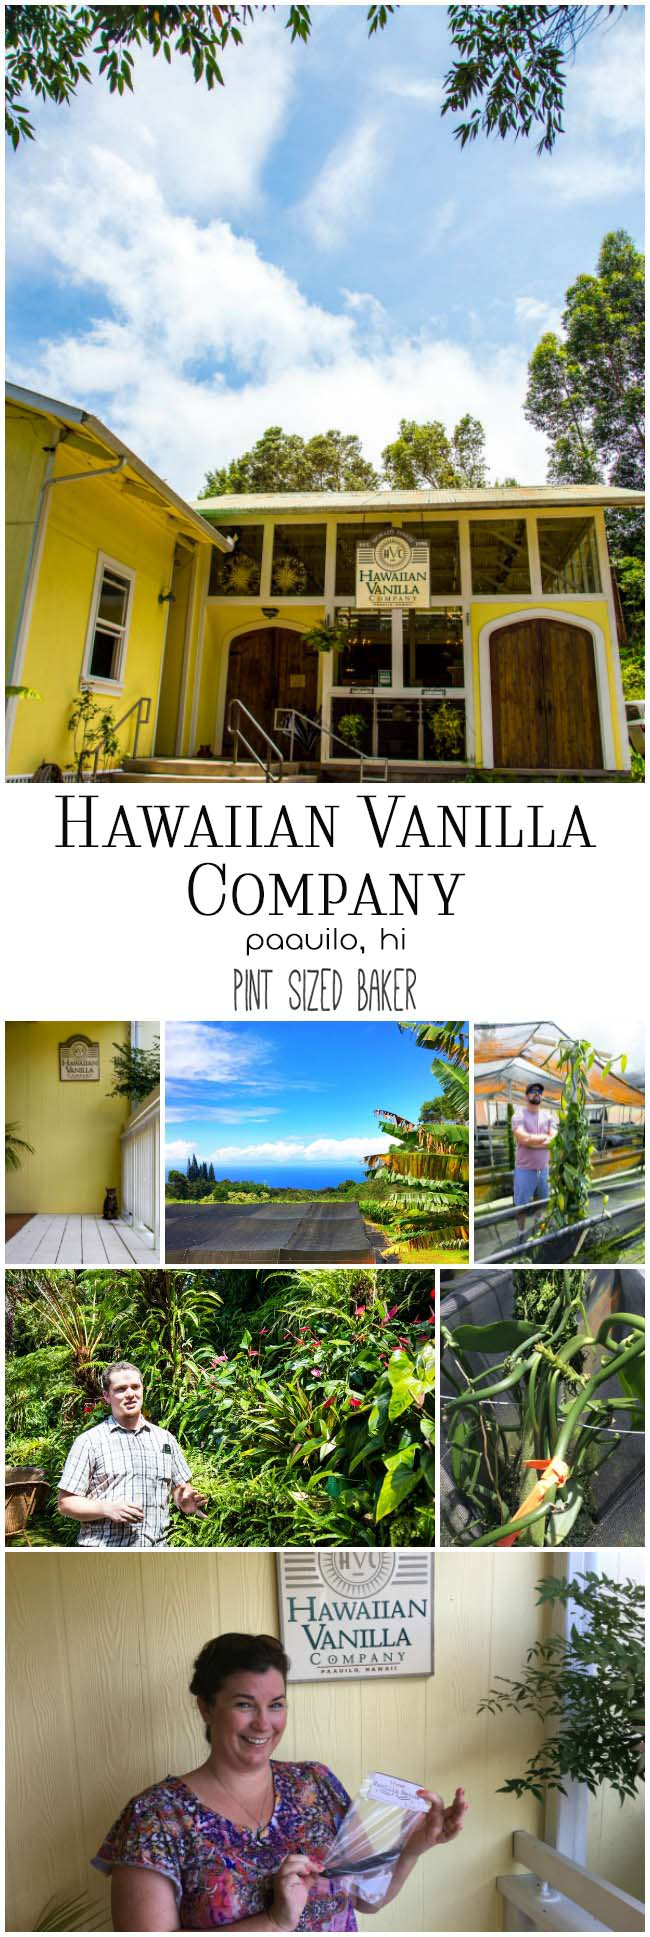 Take a drive over to Honokaa and head up the mountain to see the only Vanilla Company in the United States. Enjoy lunch and take a tour of the Hawaiian Vanilla Company.